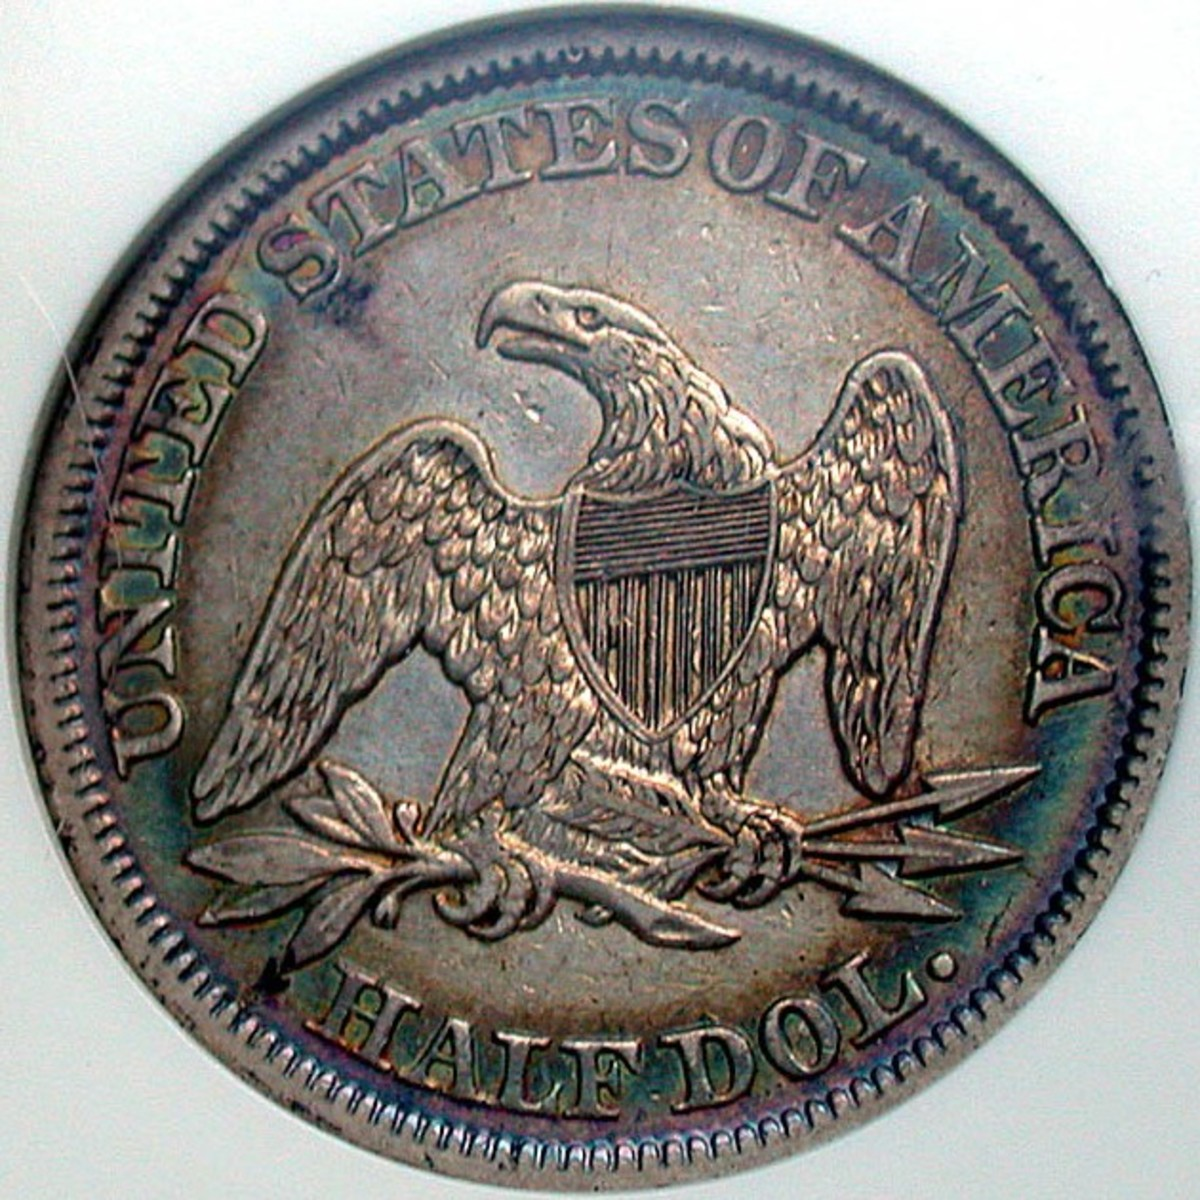 Seated Liberty Half Dollar Reverse. Photo Courtesy: coinpage.com